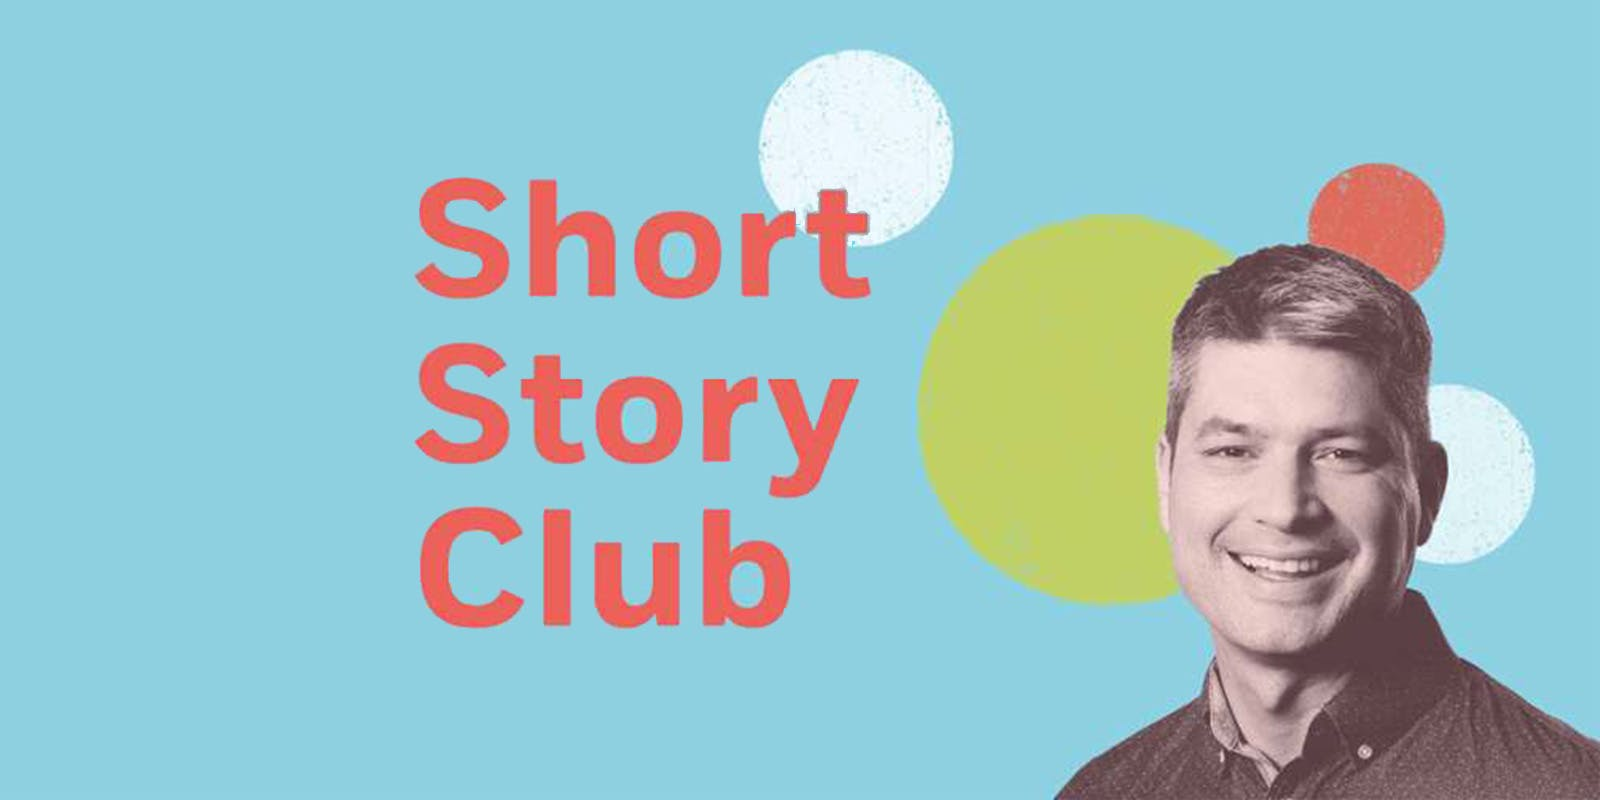 Short story club - 8 March